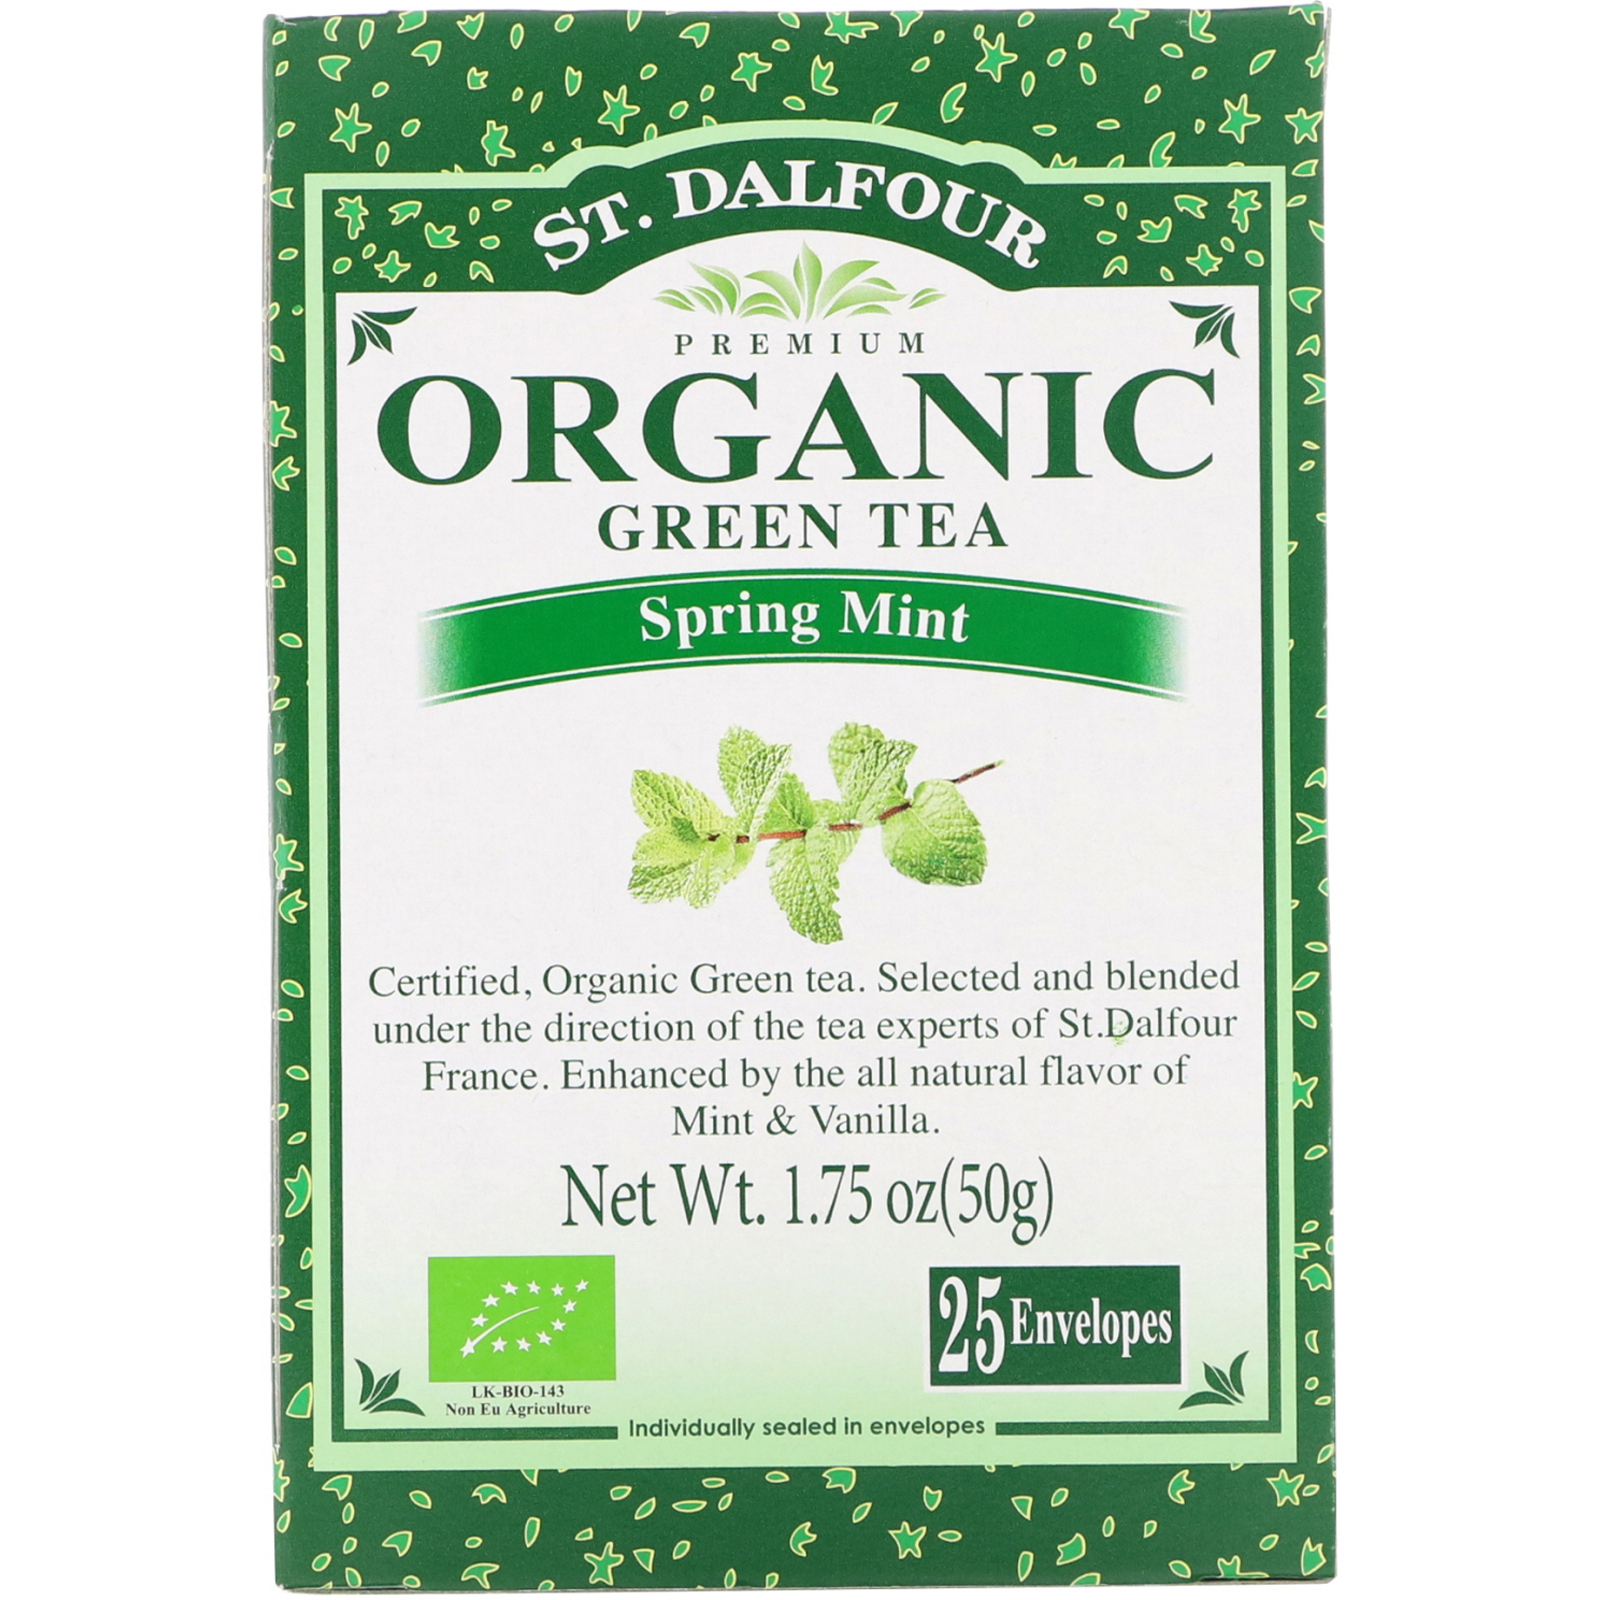 St. Dalfour, Organic Green Tea, Spring Mint, 25 Envelopes, 1.75 oz (50 g) -  iHerb